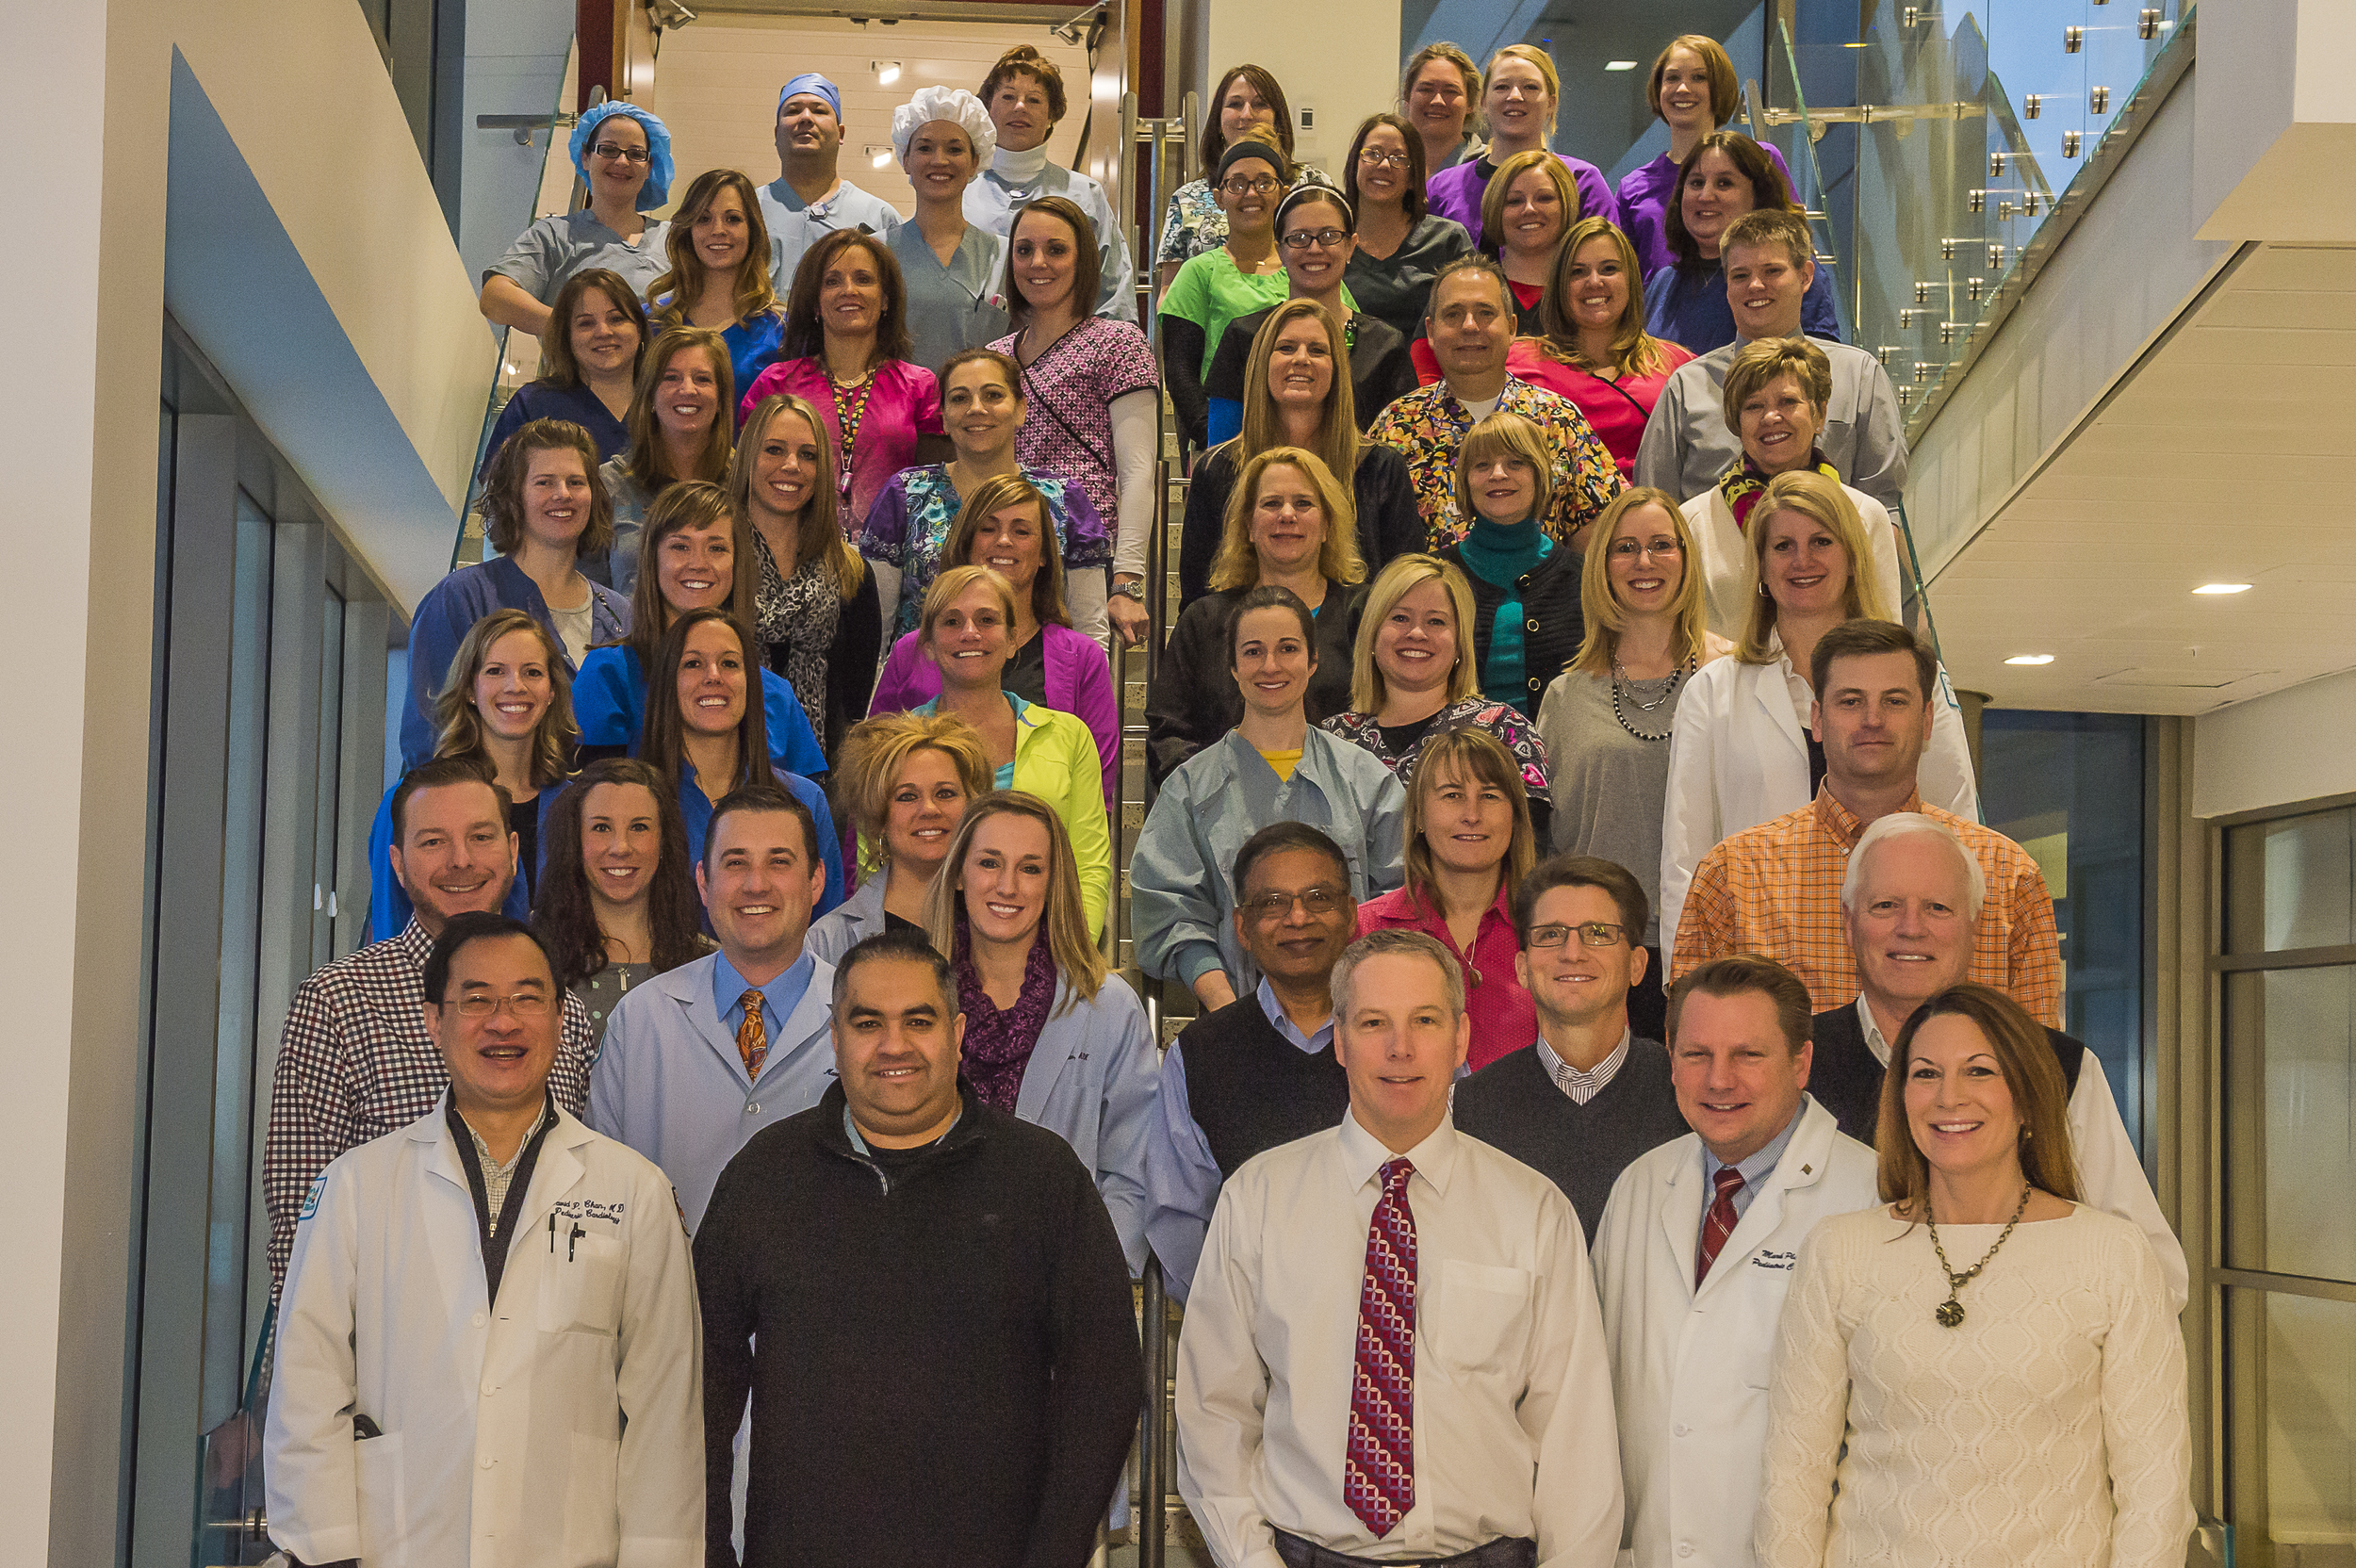 The Congenital Heart Center Team at Children's Hospital of Illinois at OSF Saint Francis Medical Center    is an important wish referral partner.